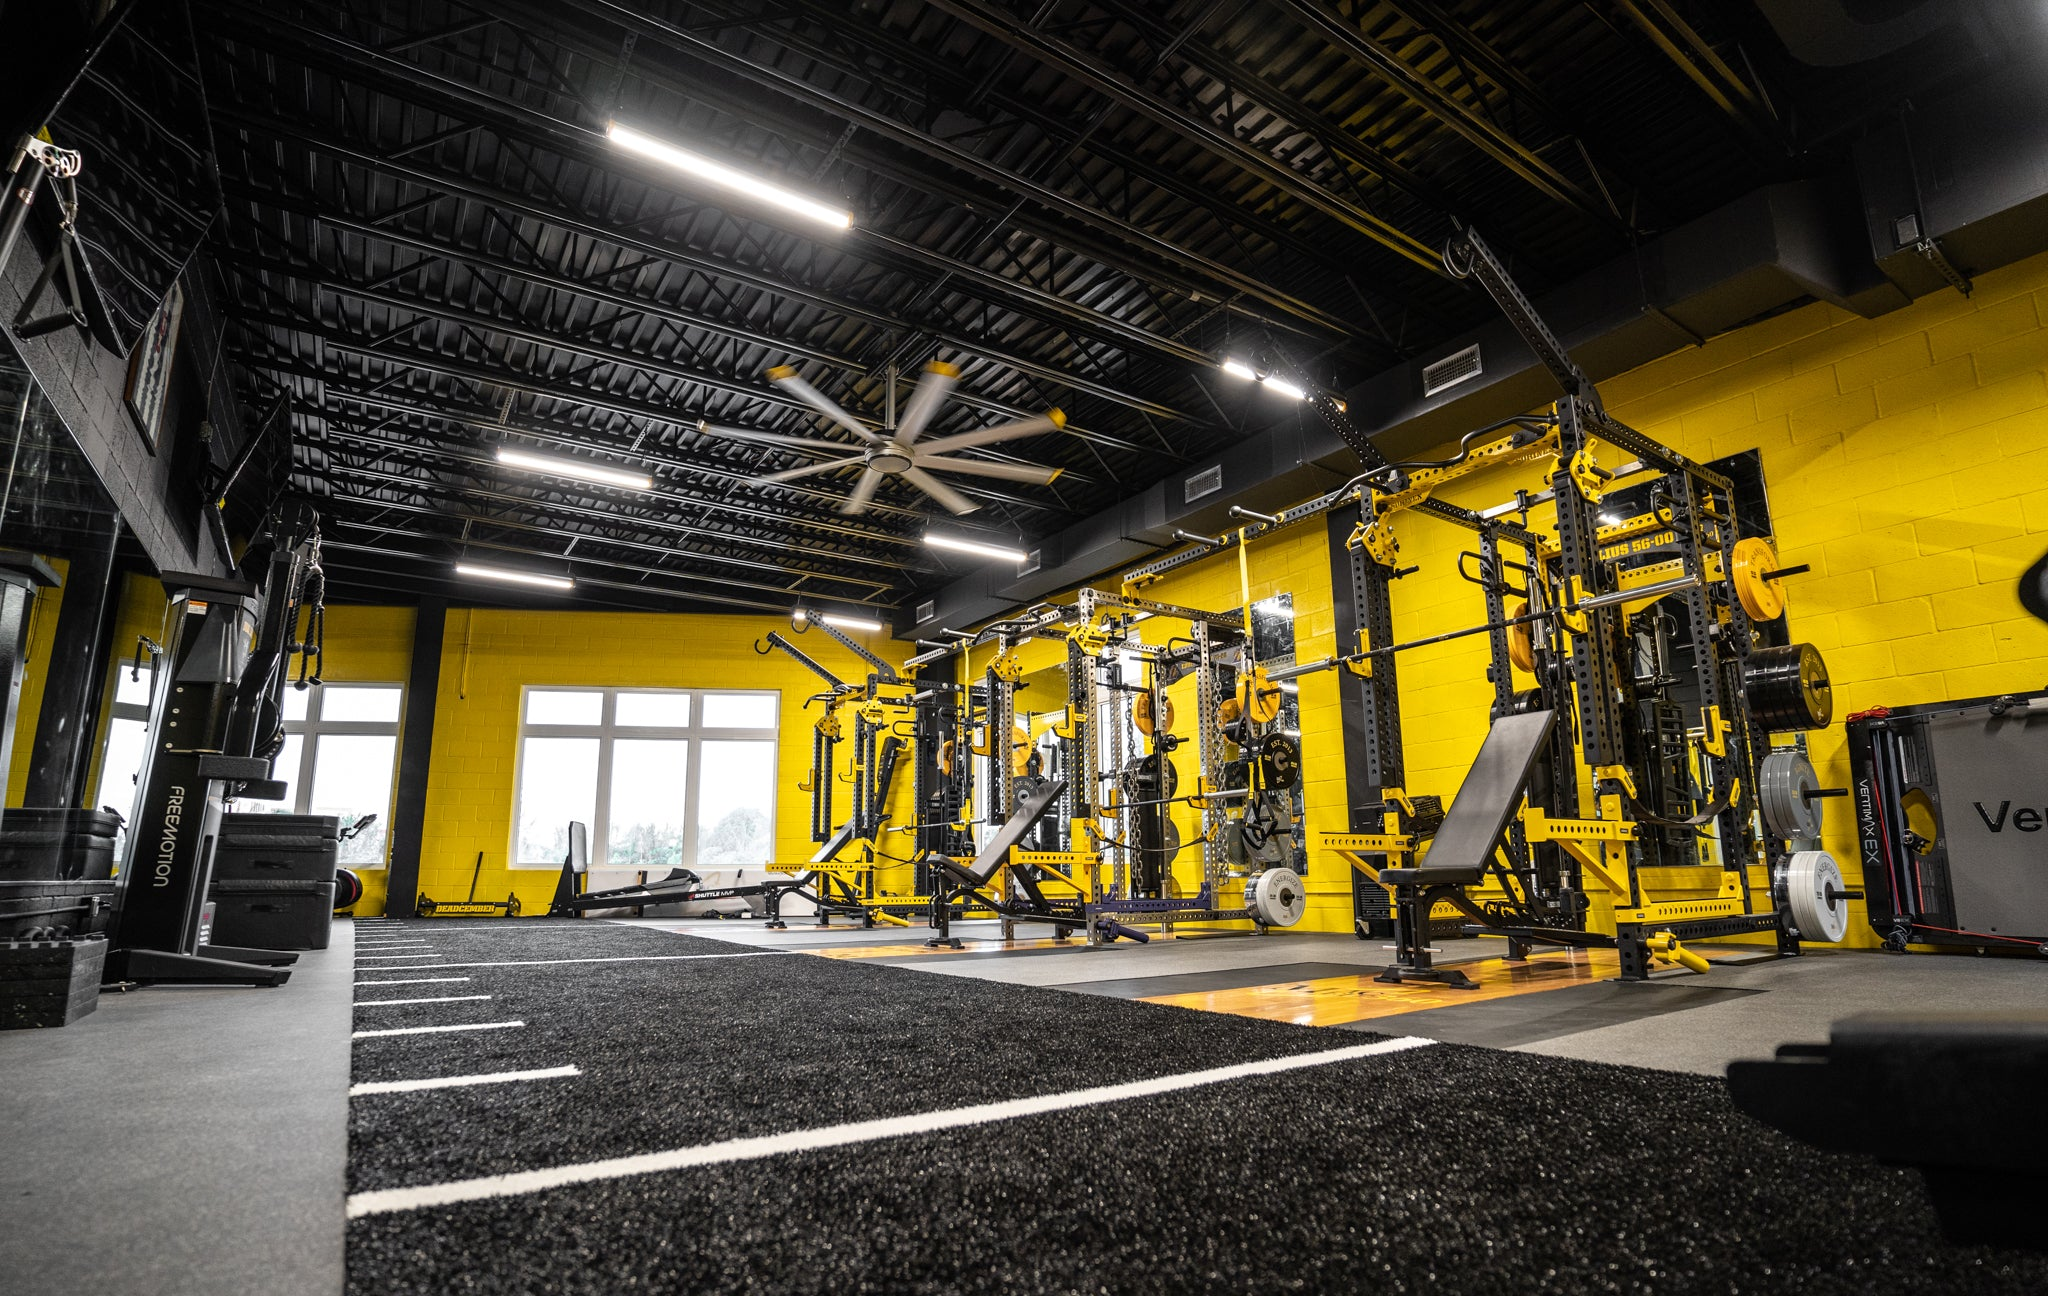 MacFit 360 Personal Training Performance Center